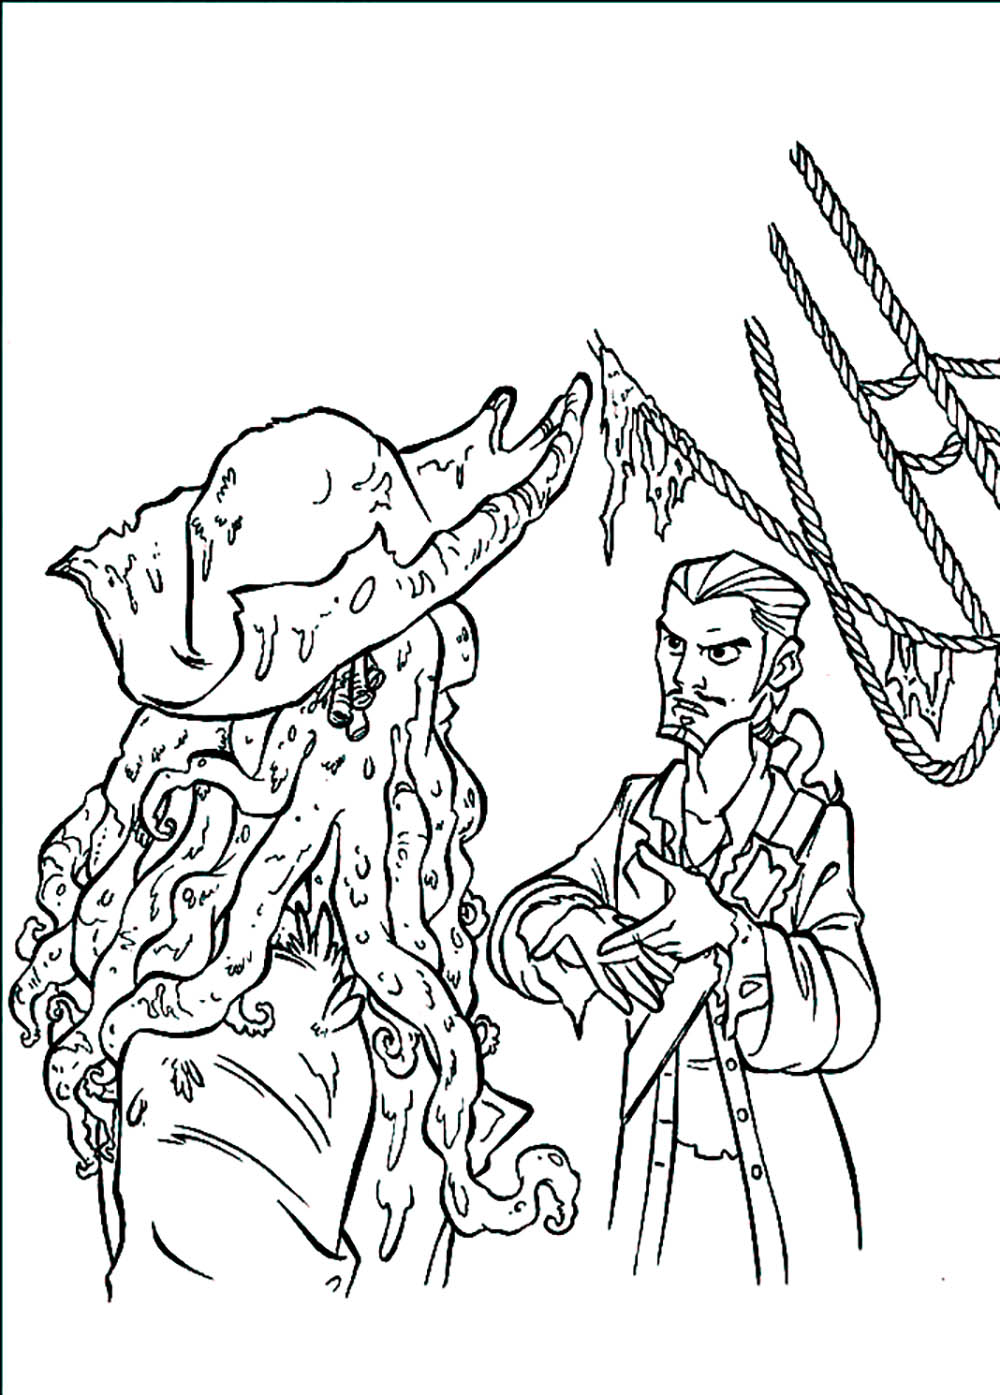 Beautiful Pirates of the Caribbean coloring page to print and color